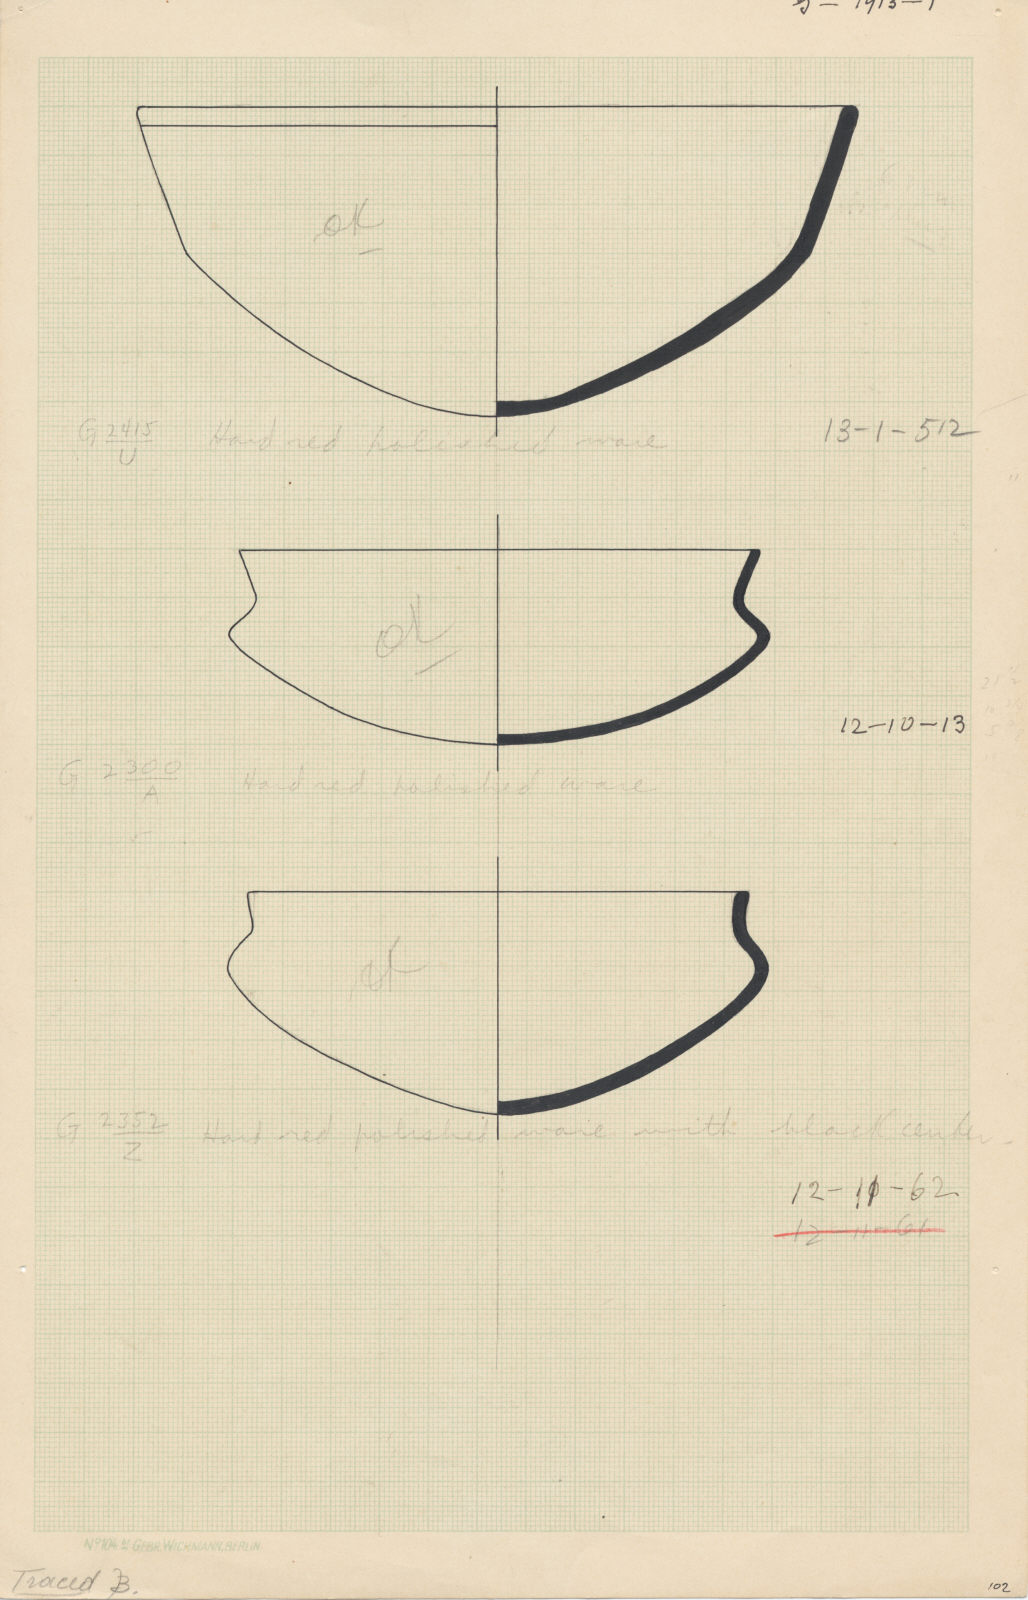 Drawings: Pottery, bowls from G 2300 (=G 5190), Shaft A, G 2415, Shaft U, G 2352, Shaft Z